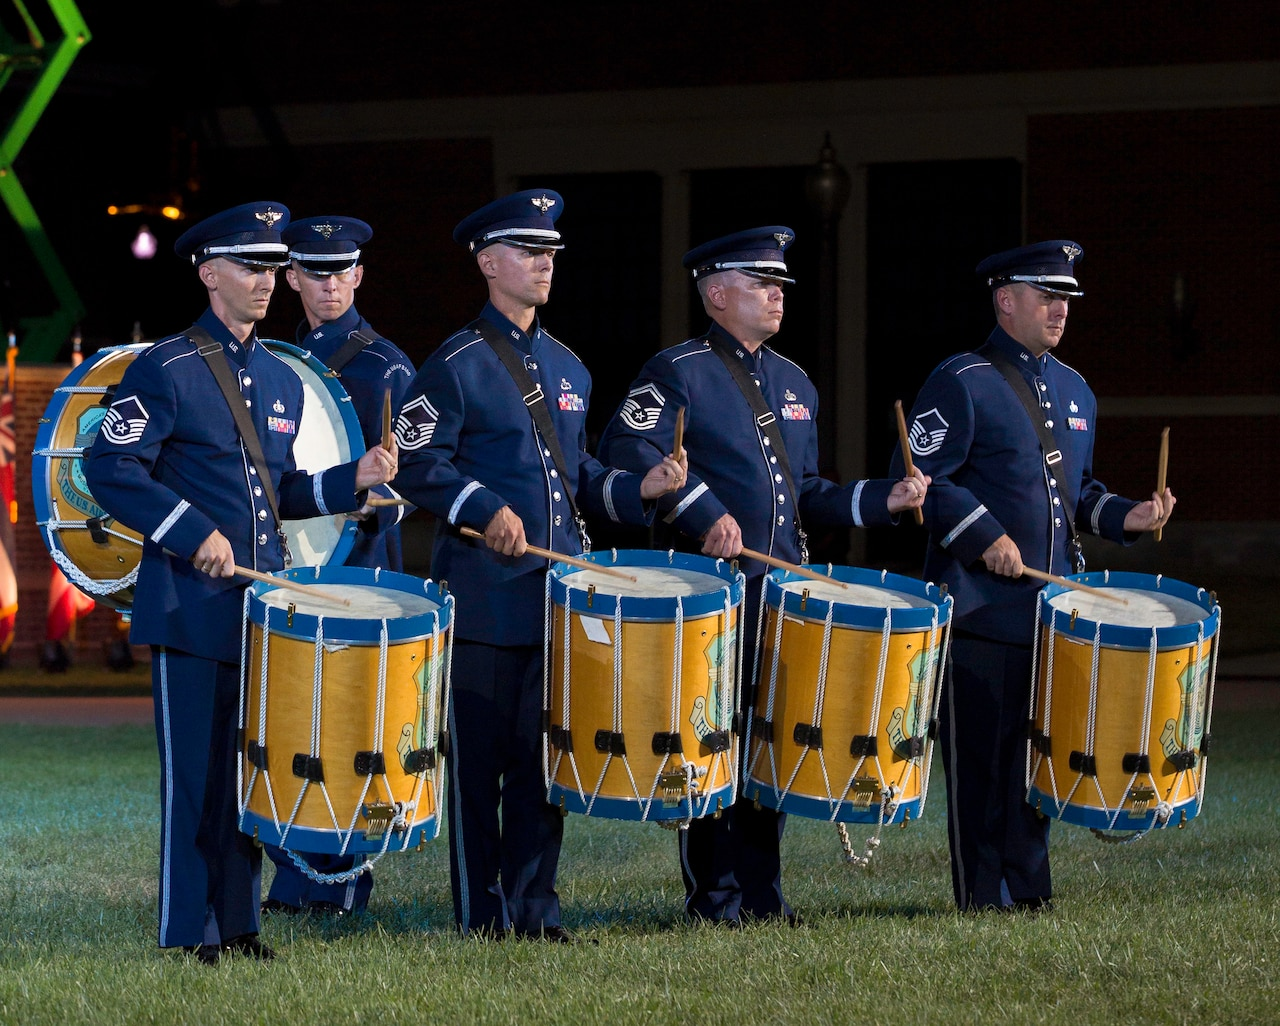 Four airmen in dress blue uniforms play large drums on a grassy field at night. A fifth airman walks past in the background.